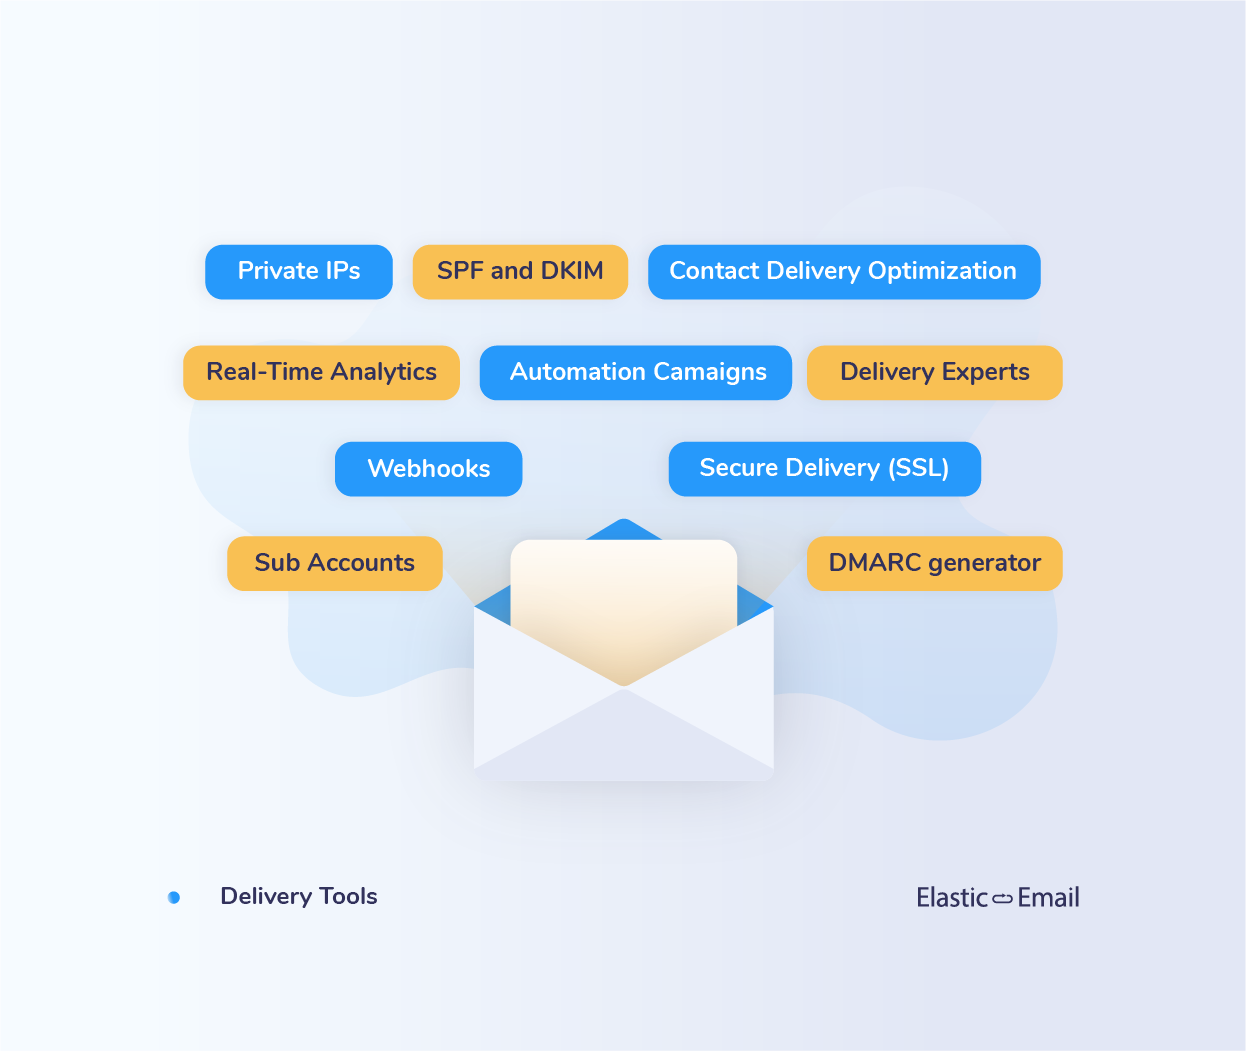 Elastic Email Demo - Take control of your delivery